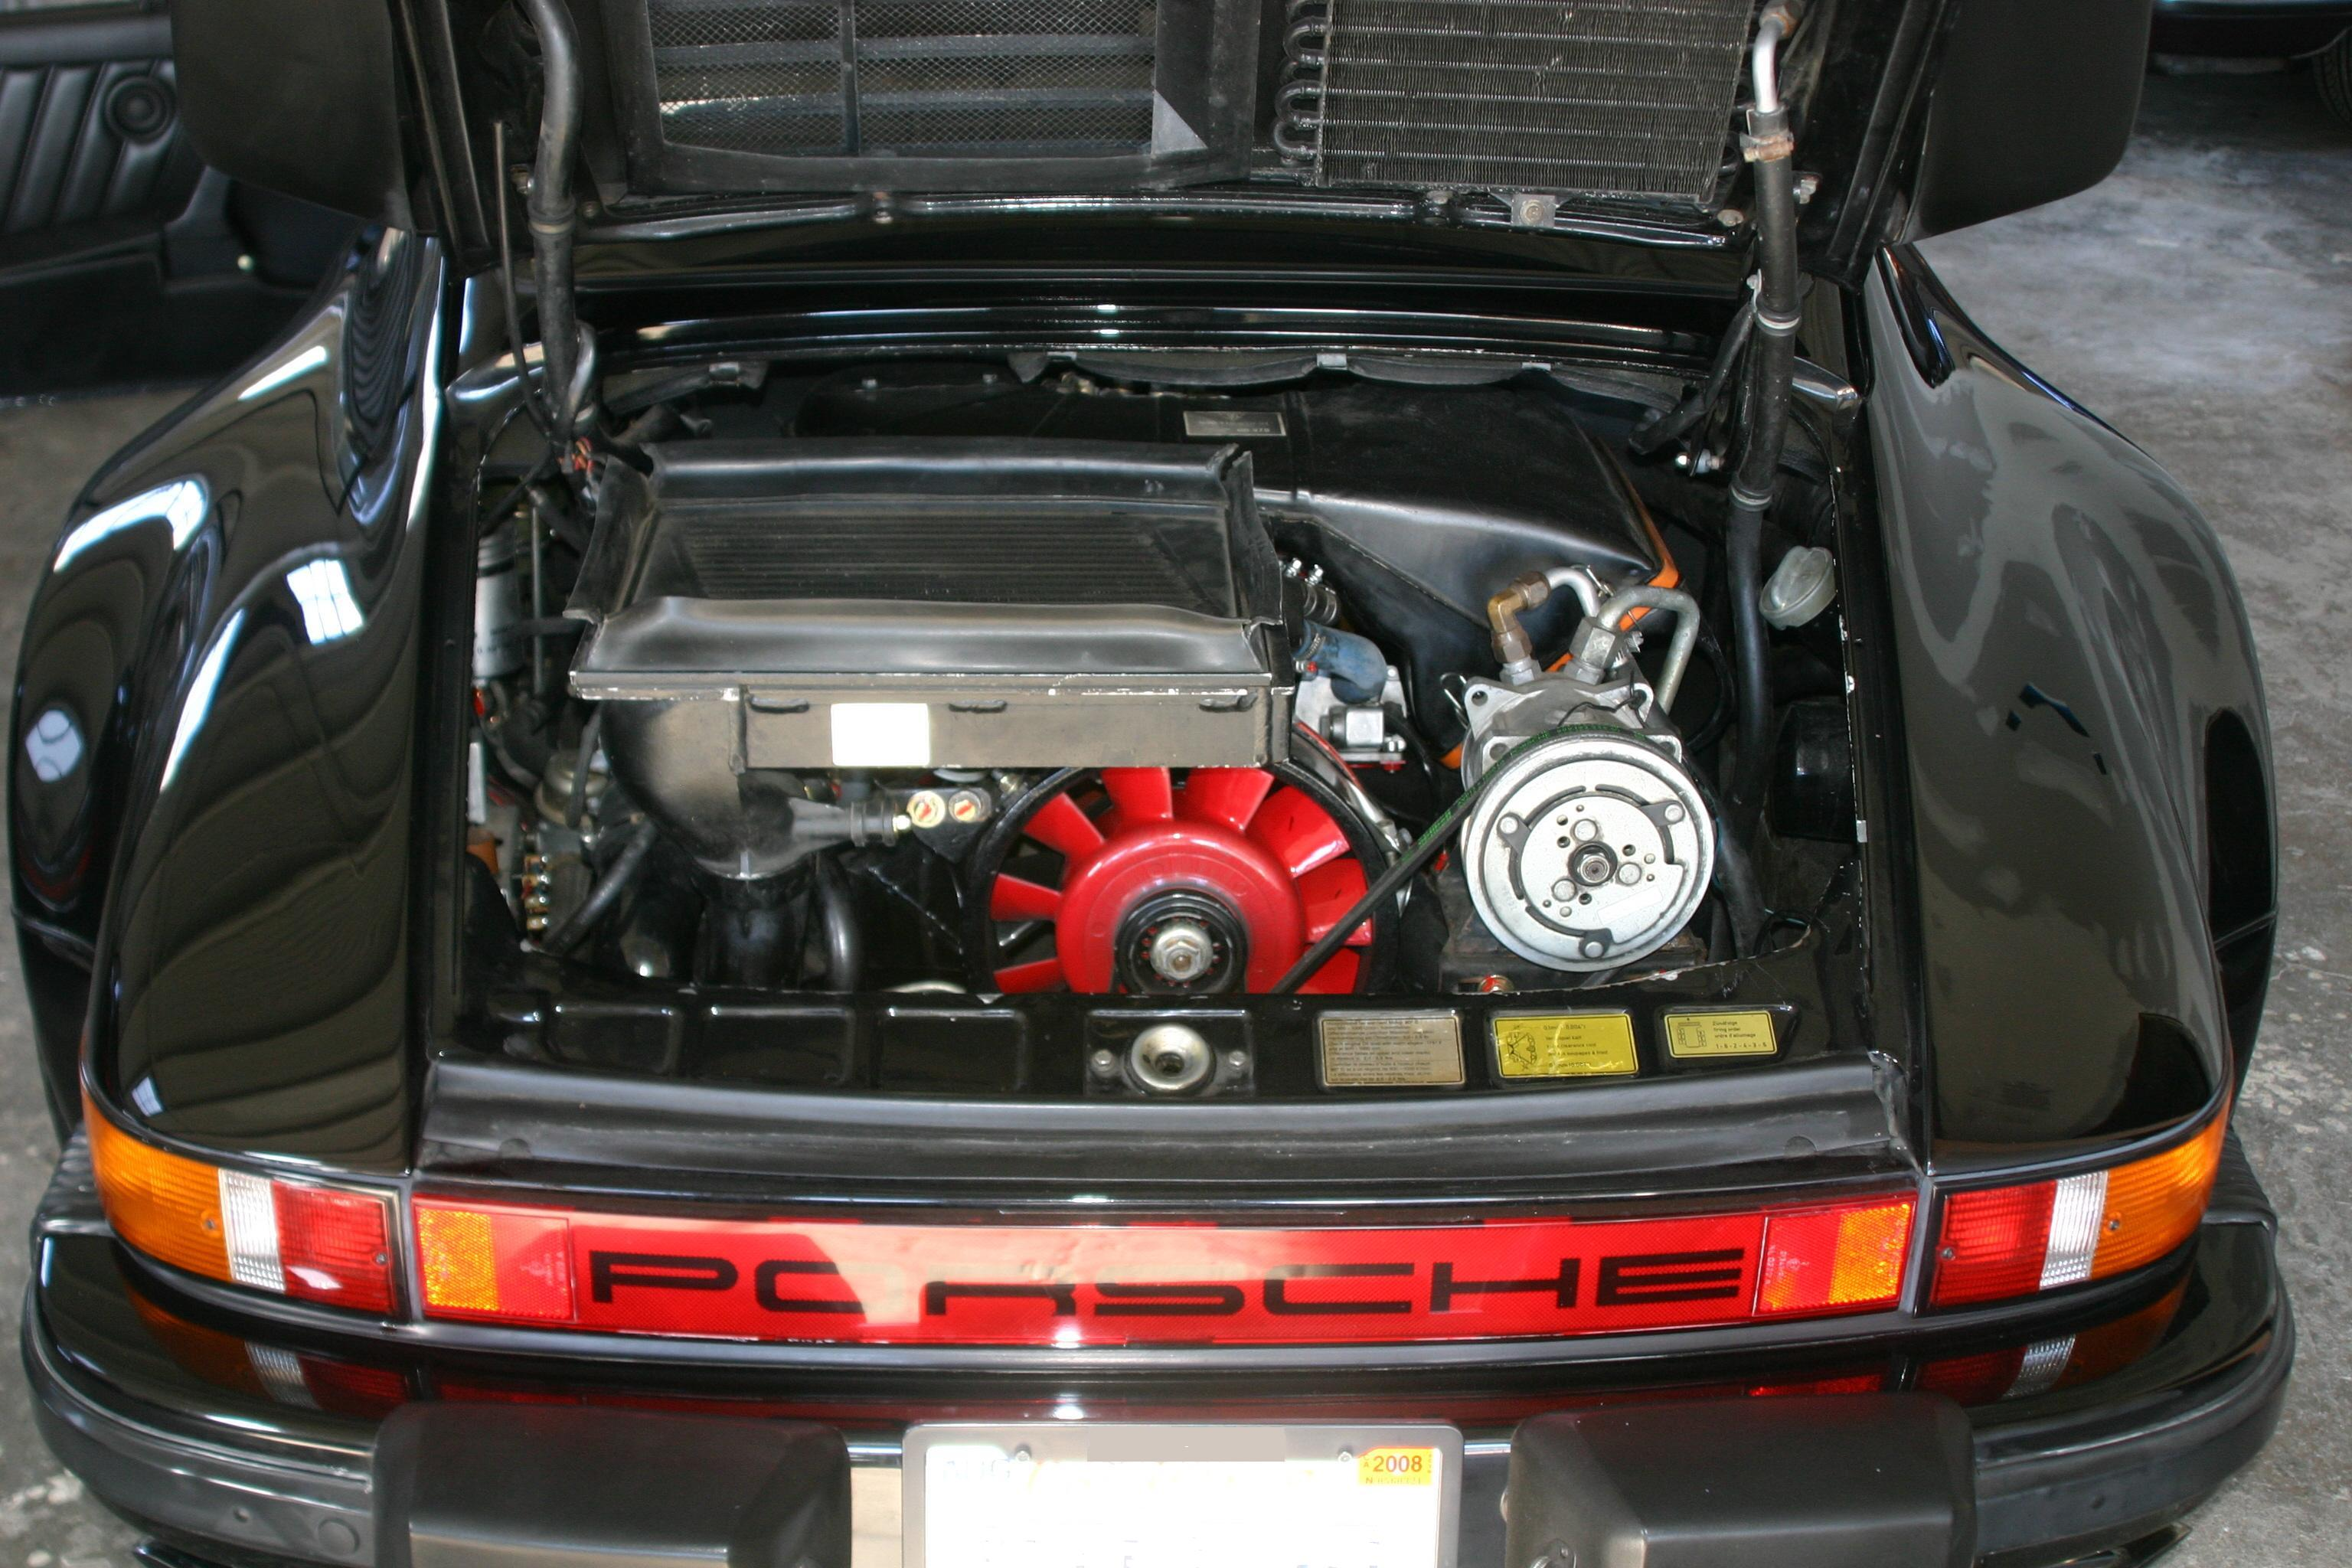 PORSCHE 930 TURBO engine